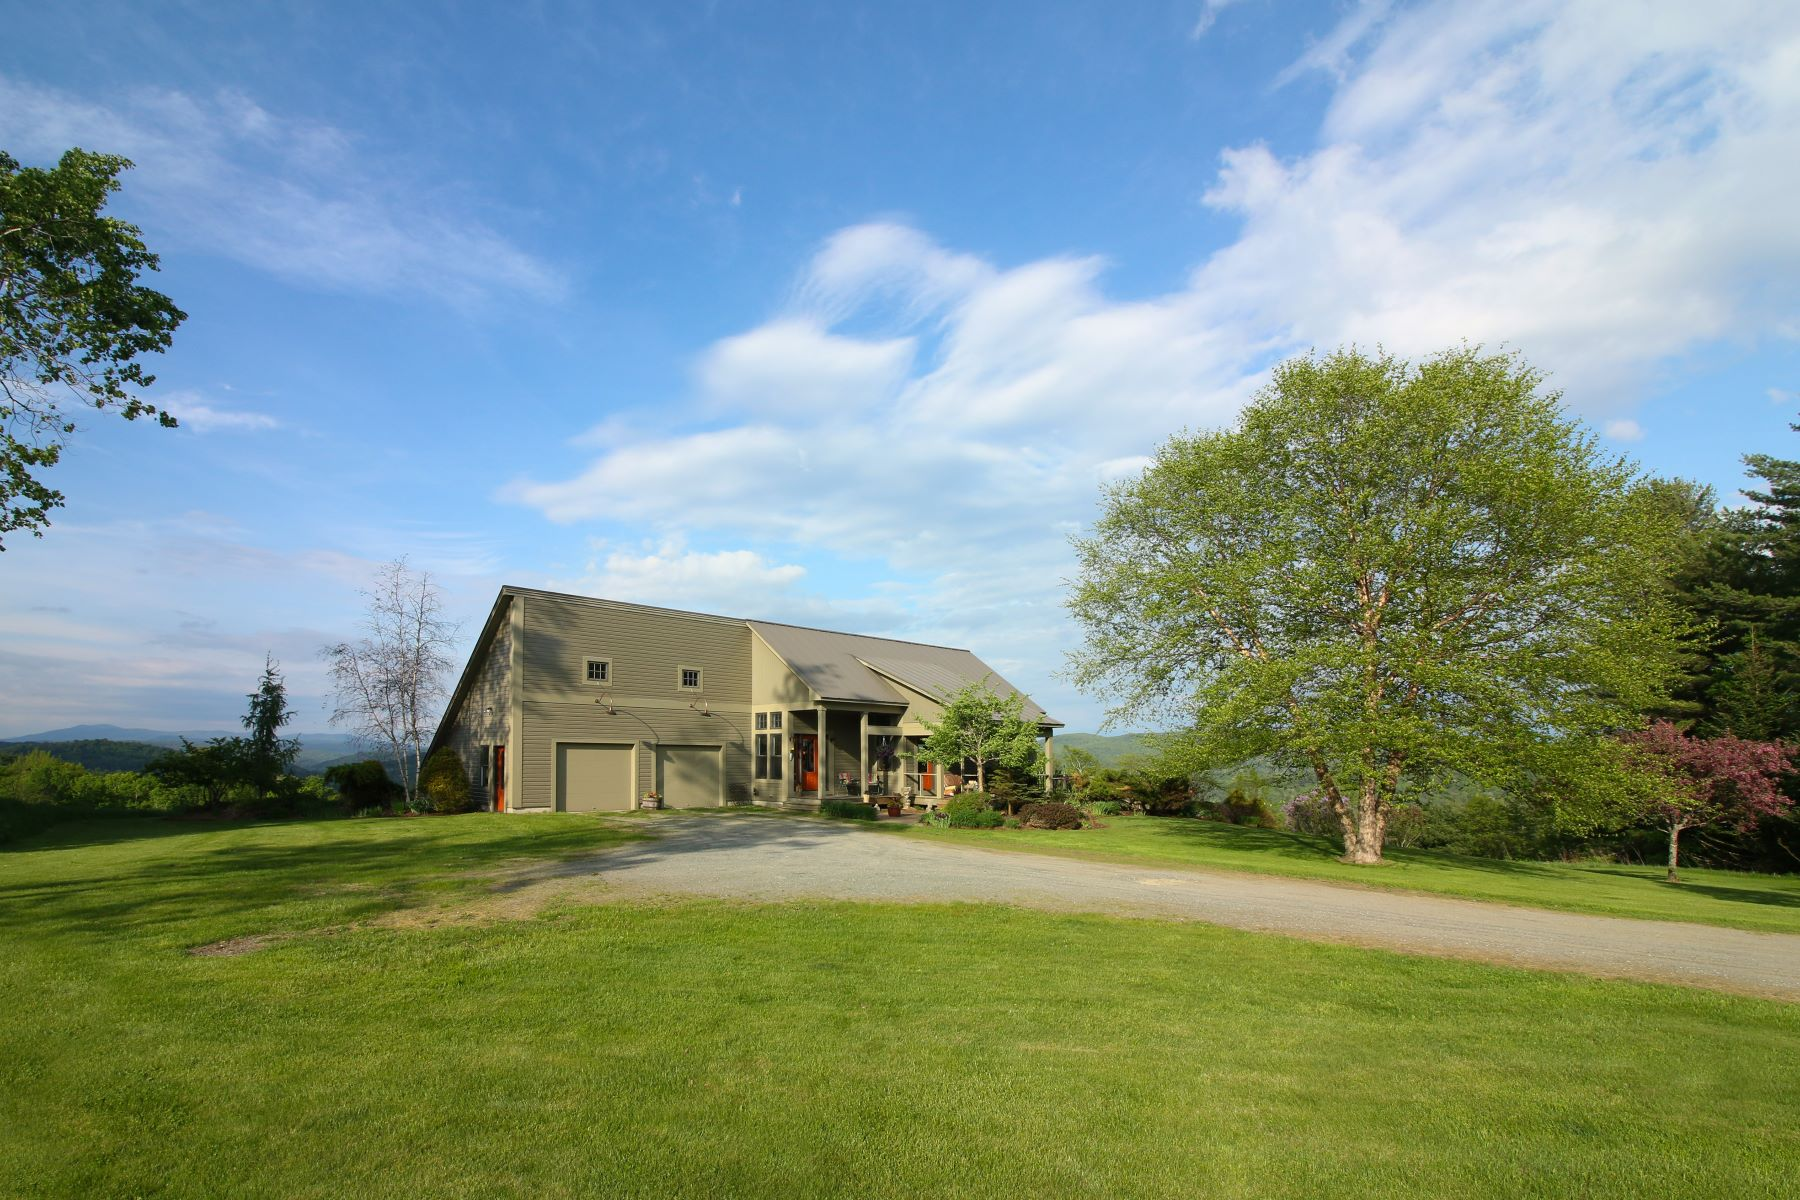 Single Family Homes for Sale at Pickle Hill House 1176 Kitchel Hill Rd Barnet, Vermont 05821 United States